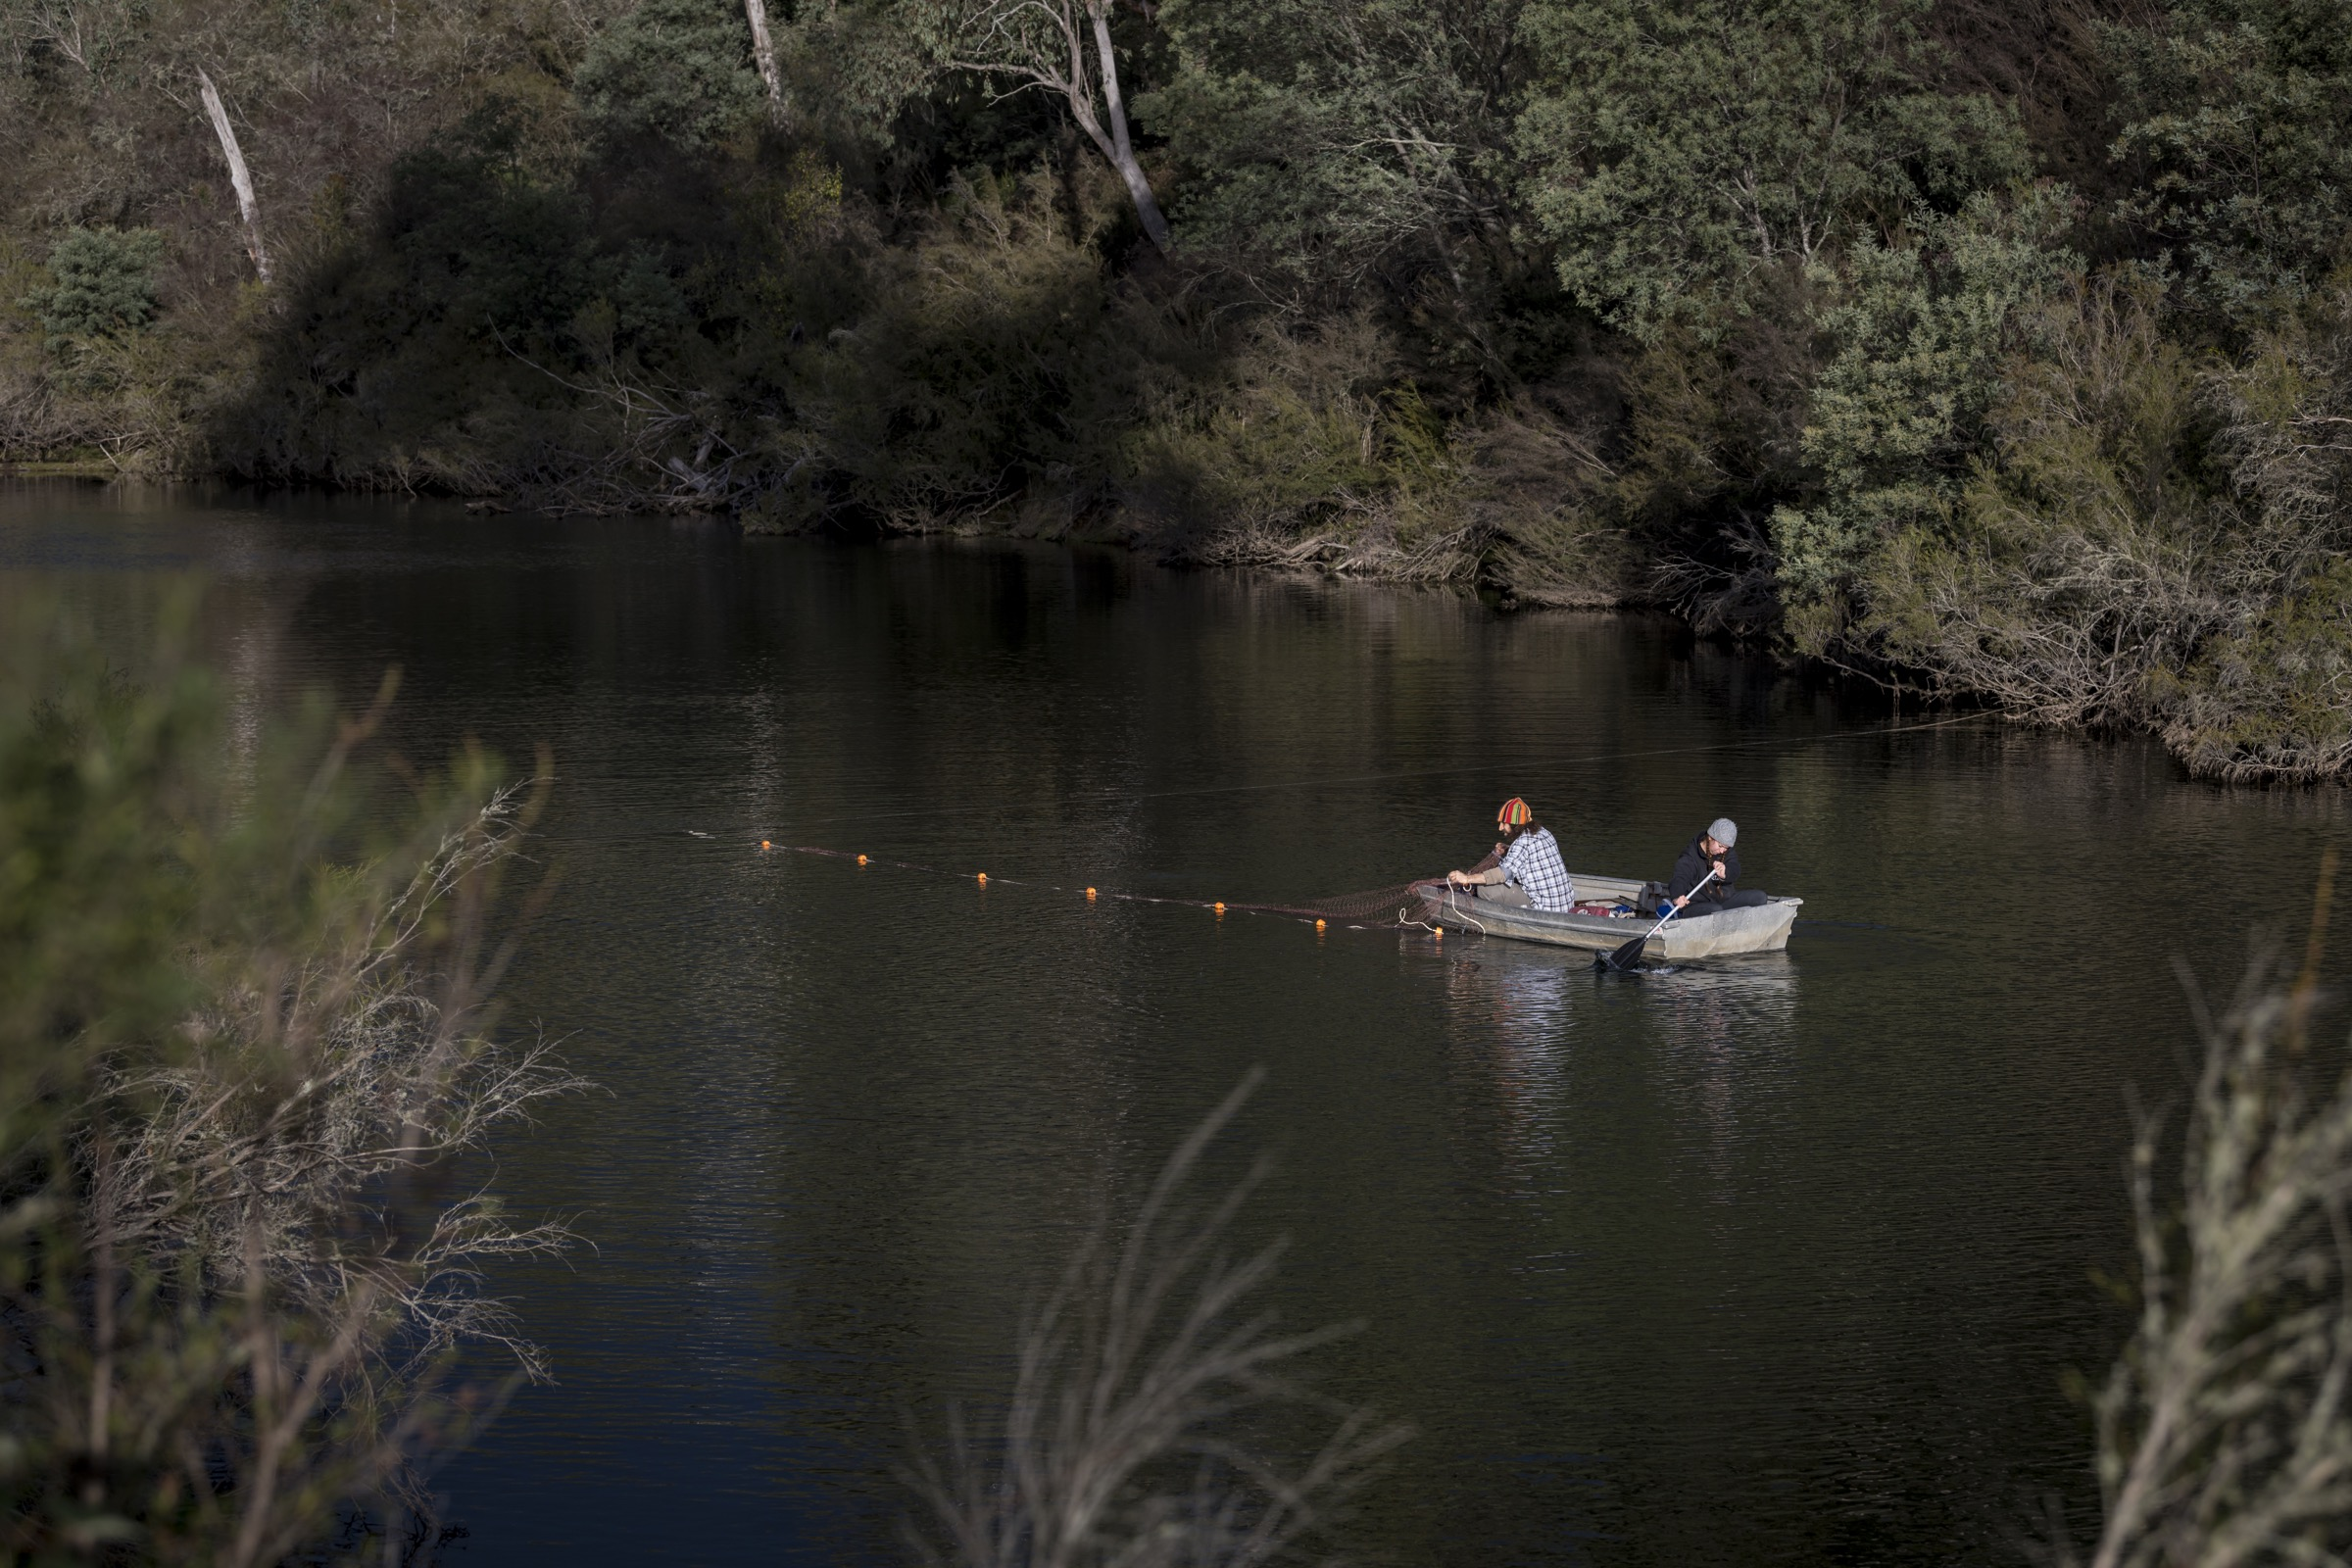 Researchers place nets in the Mitta Mitta River near Dartmouth, Victoria in an attempt to trap and mark resident platypuses.